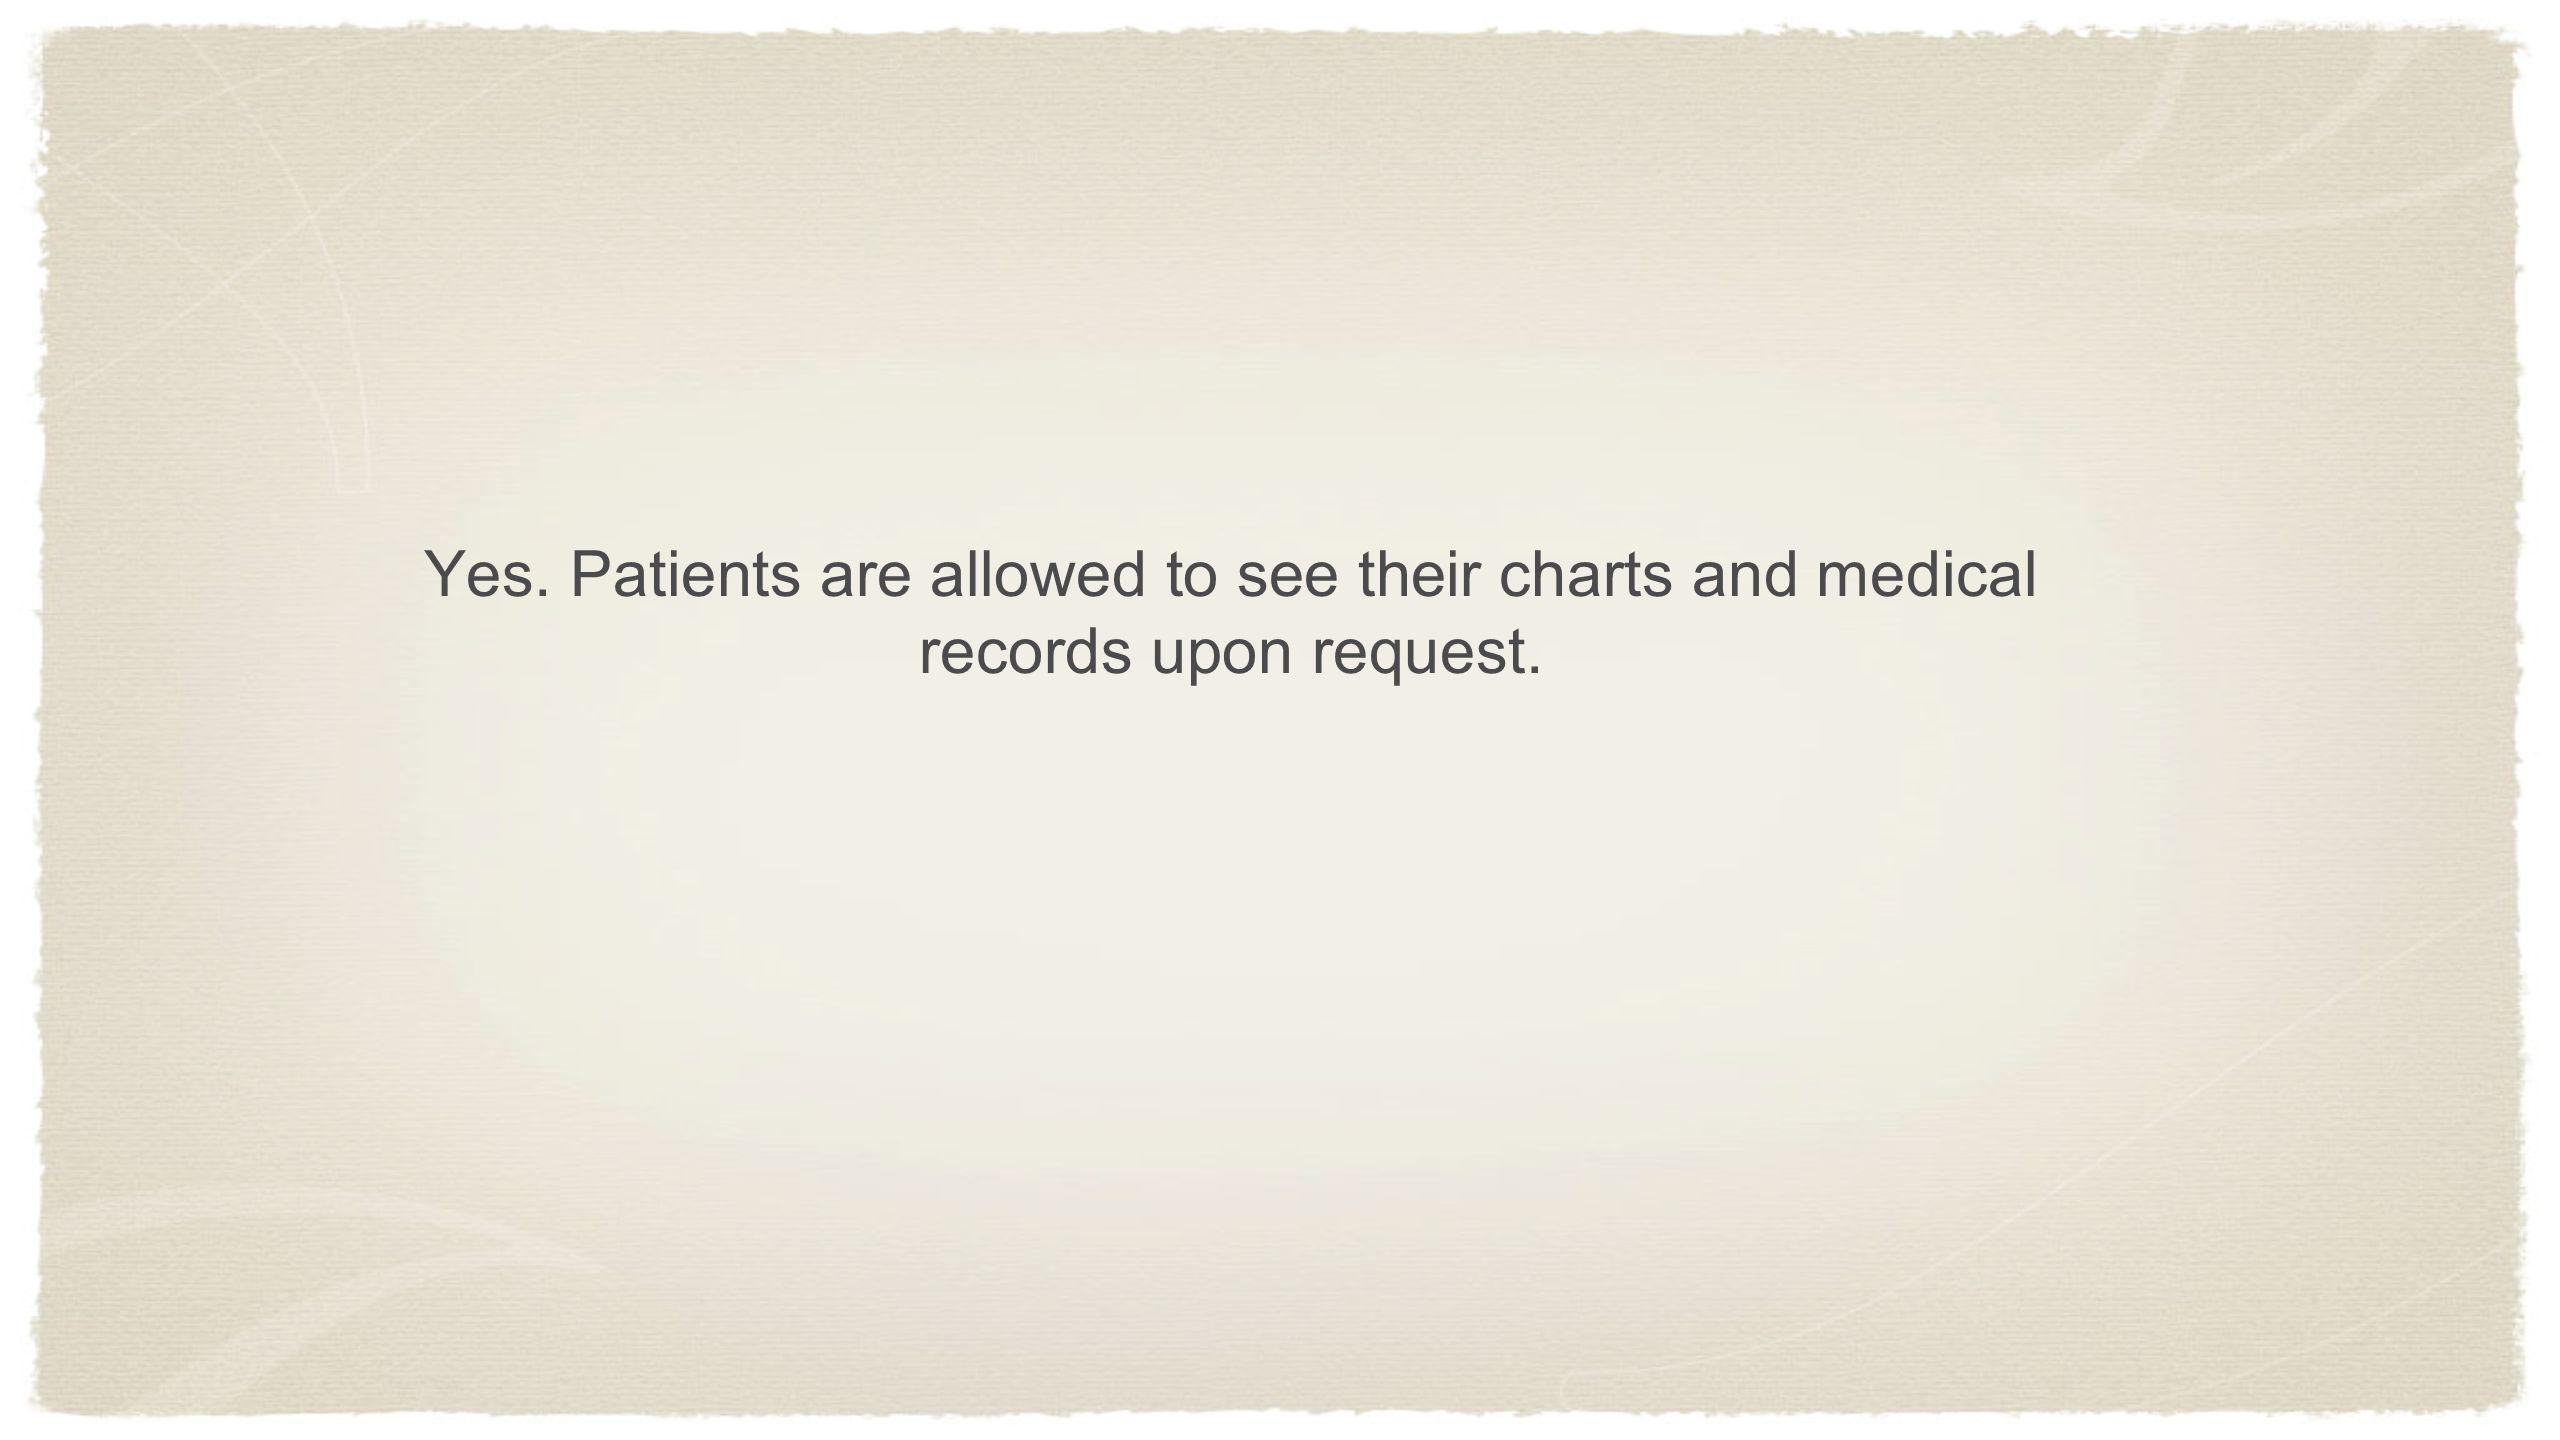 Yes. Patients are allowed to see their charts and medical records upon request.